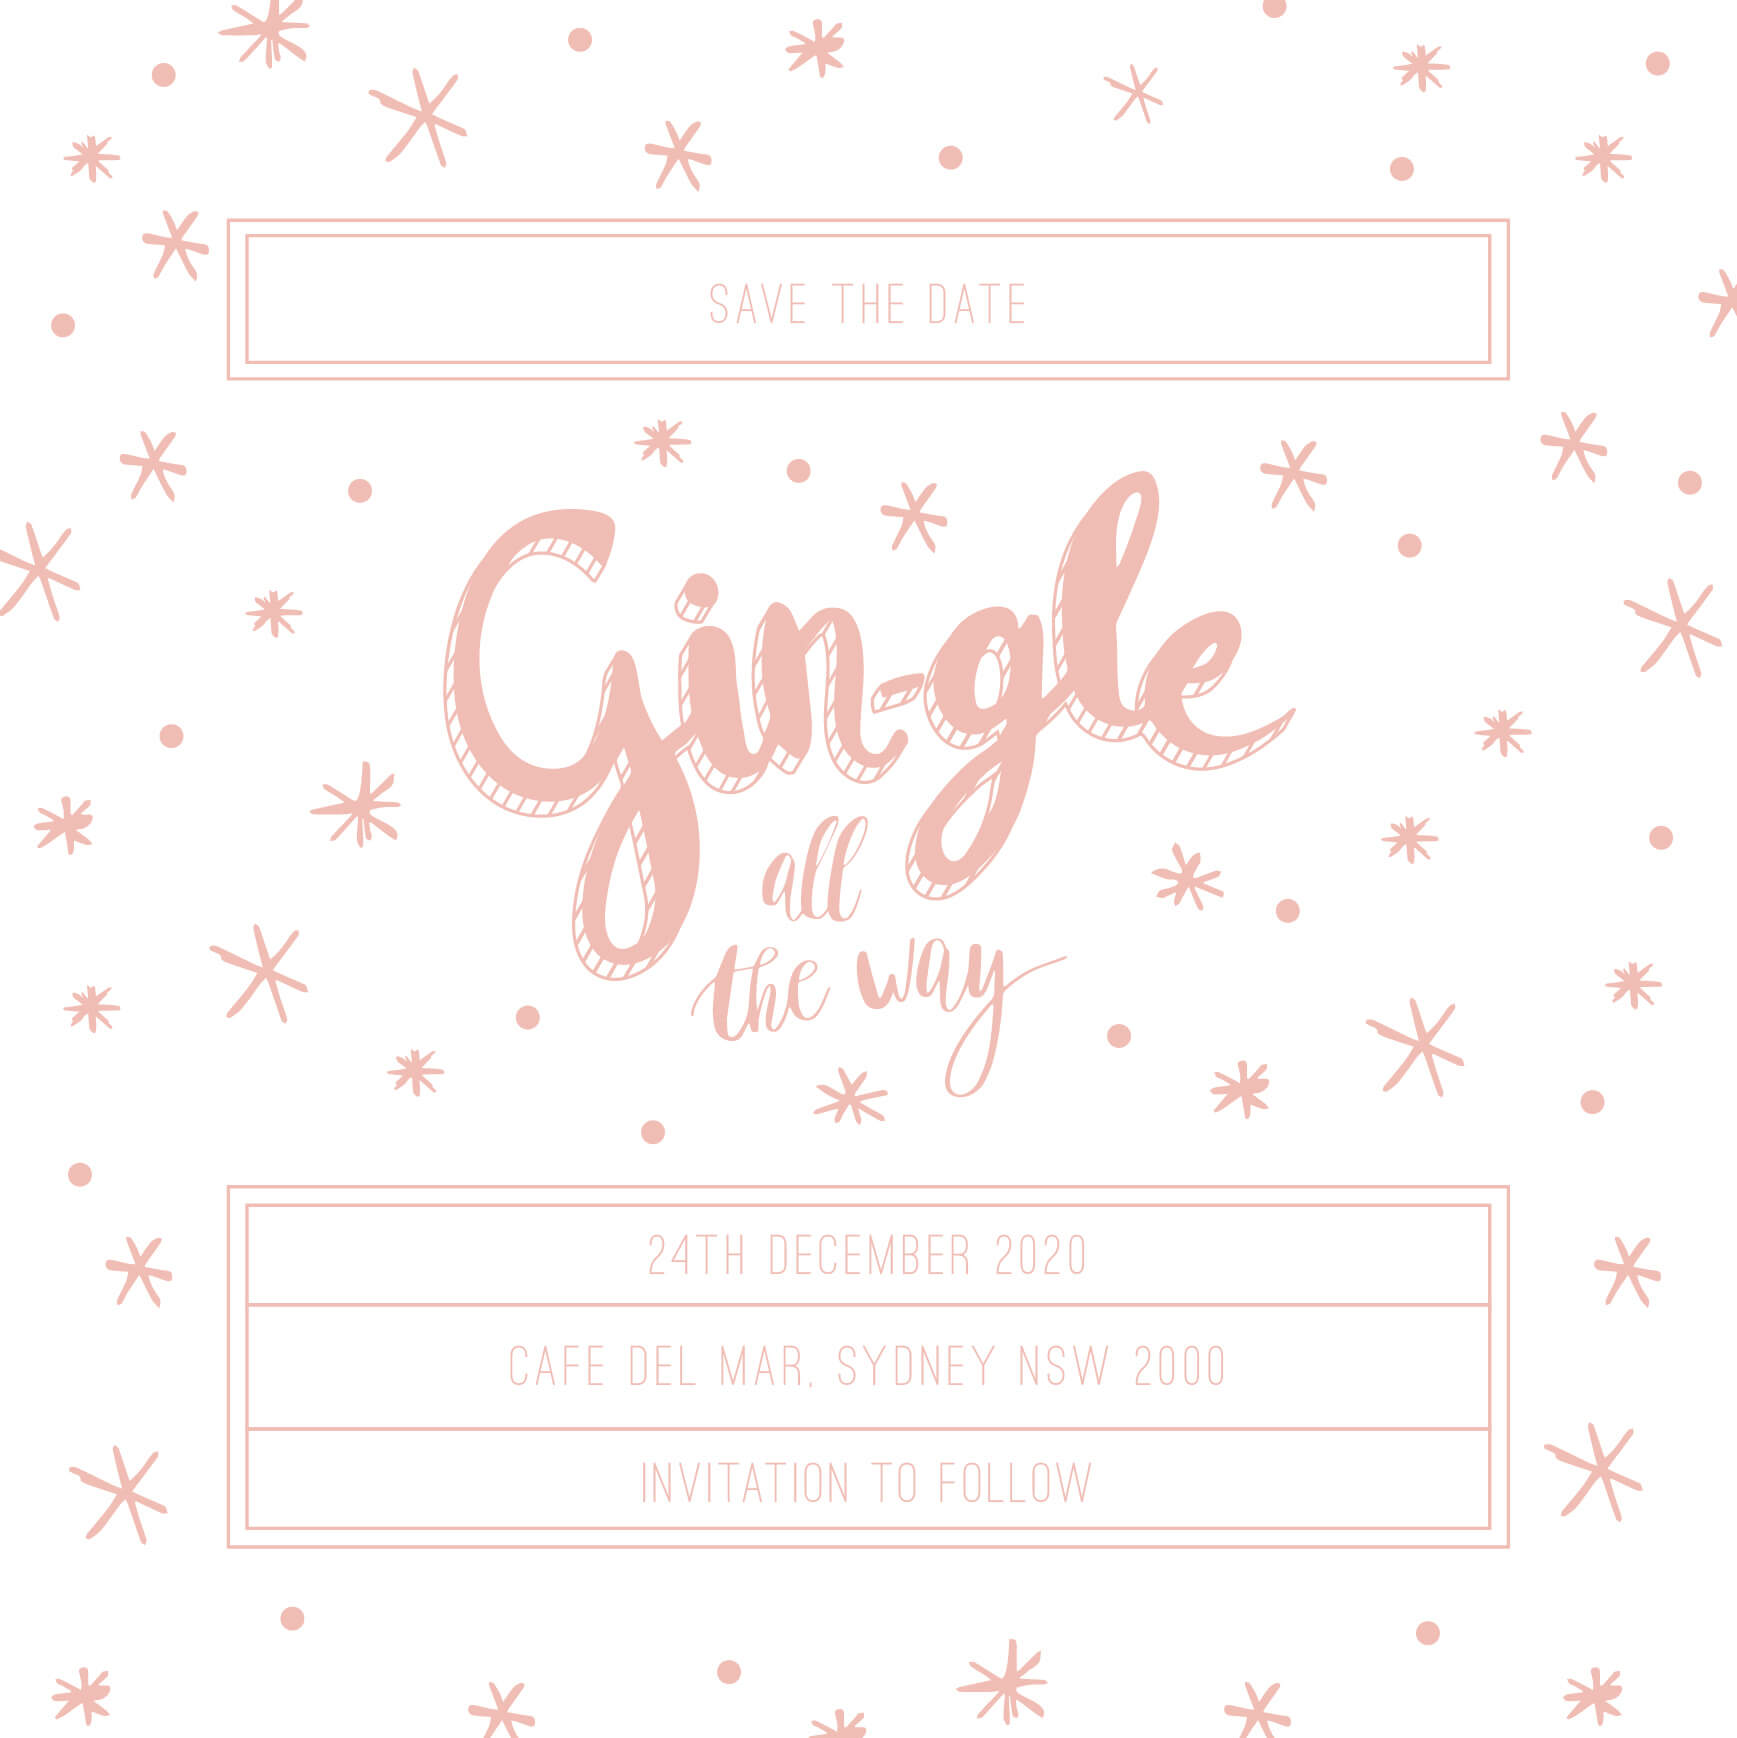 Gin-gle all the way - Save The Date